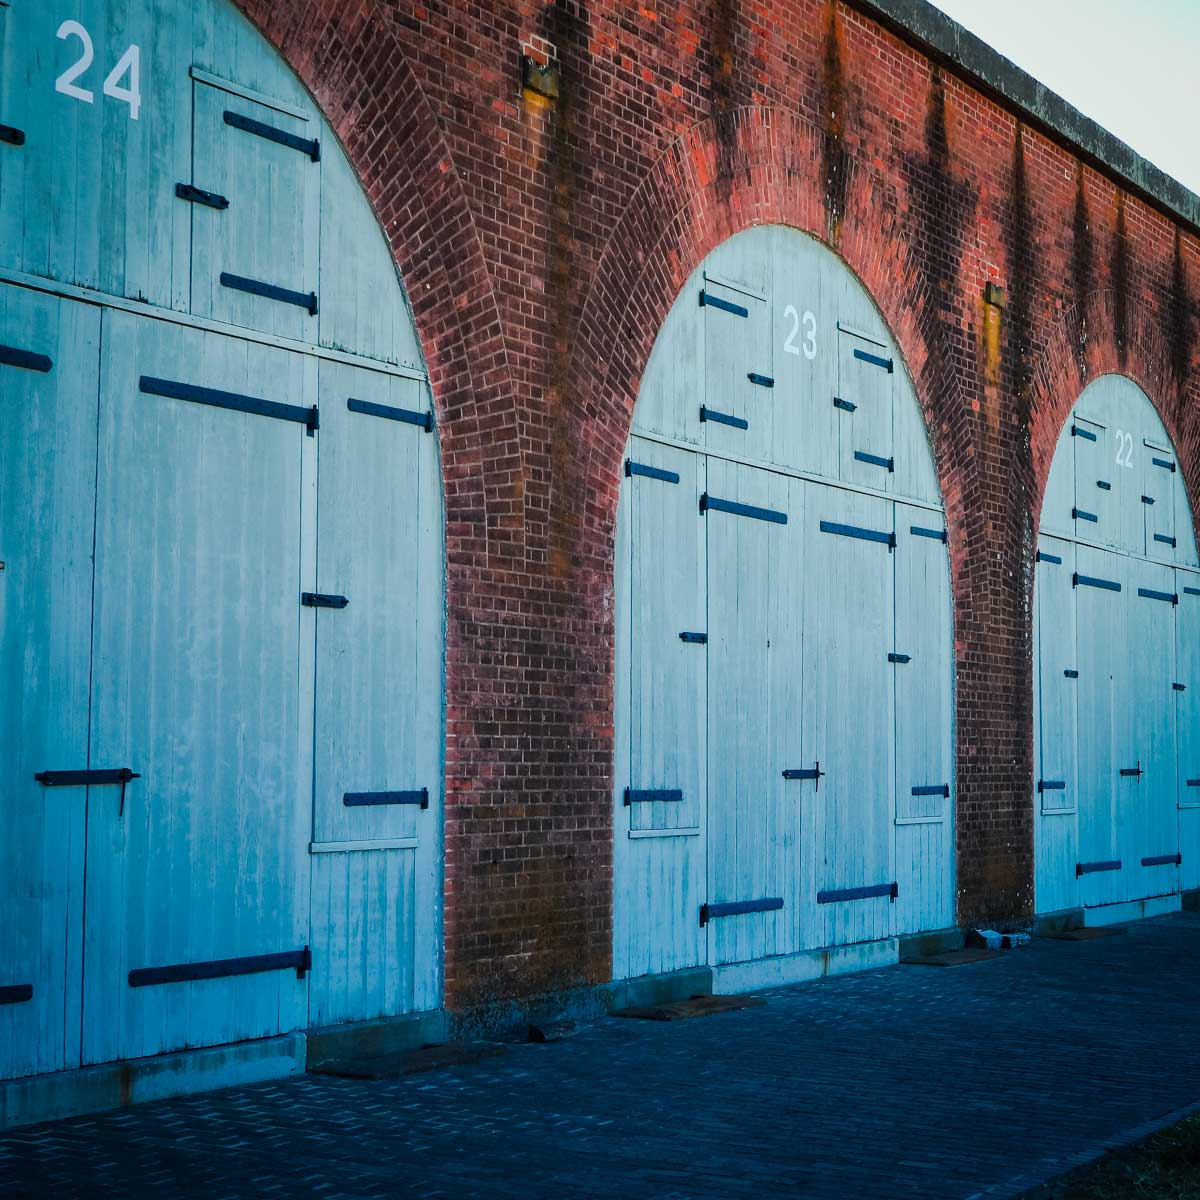 The massive exterior doors of Fort Pulaski, one of the cool things to do in Savannah, Georgia